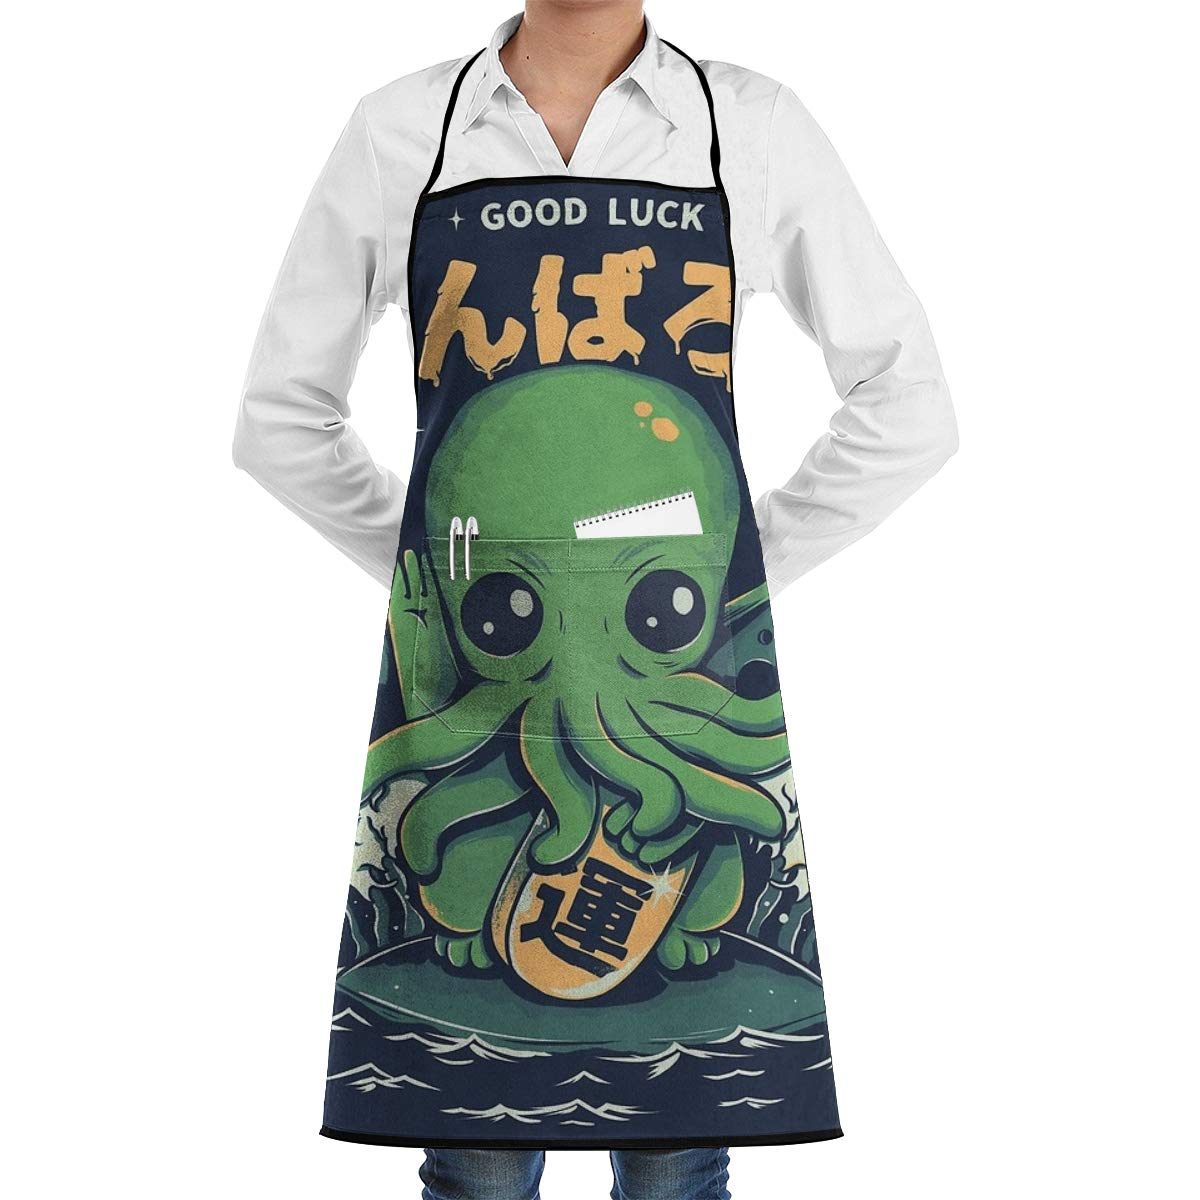 Ameok-Design Good Luck Cthulhu - Delantal de Cocina Unisex ...